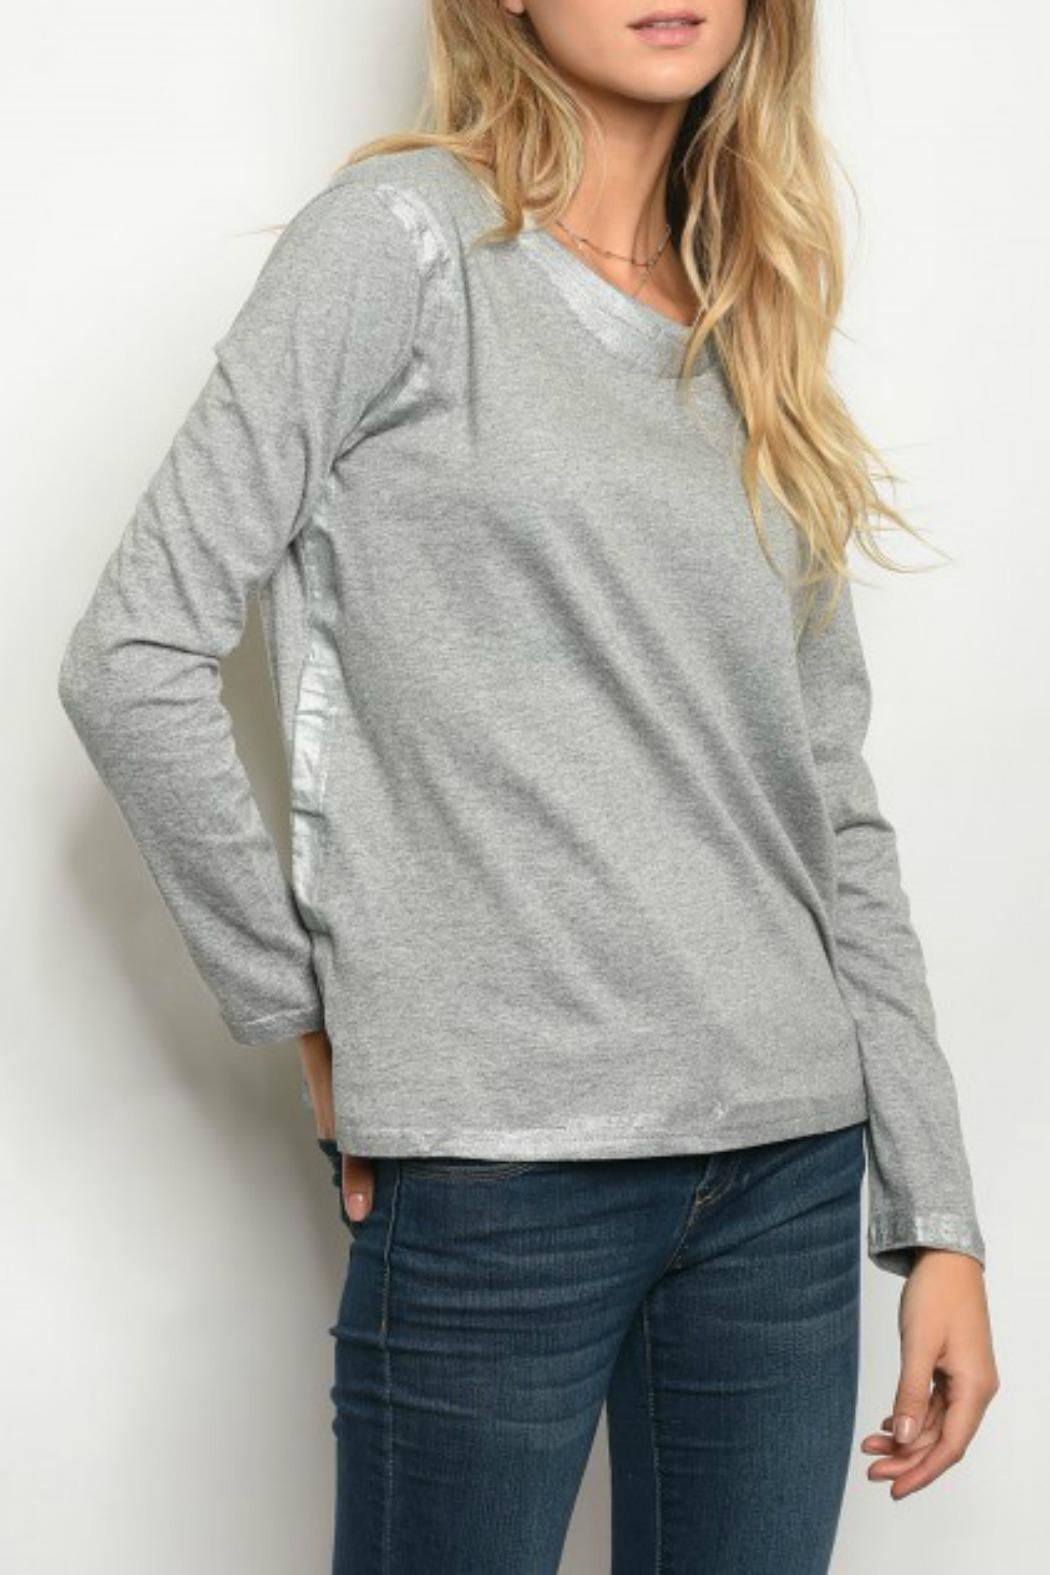 LoveRiche Grey Top - Main Image